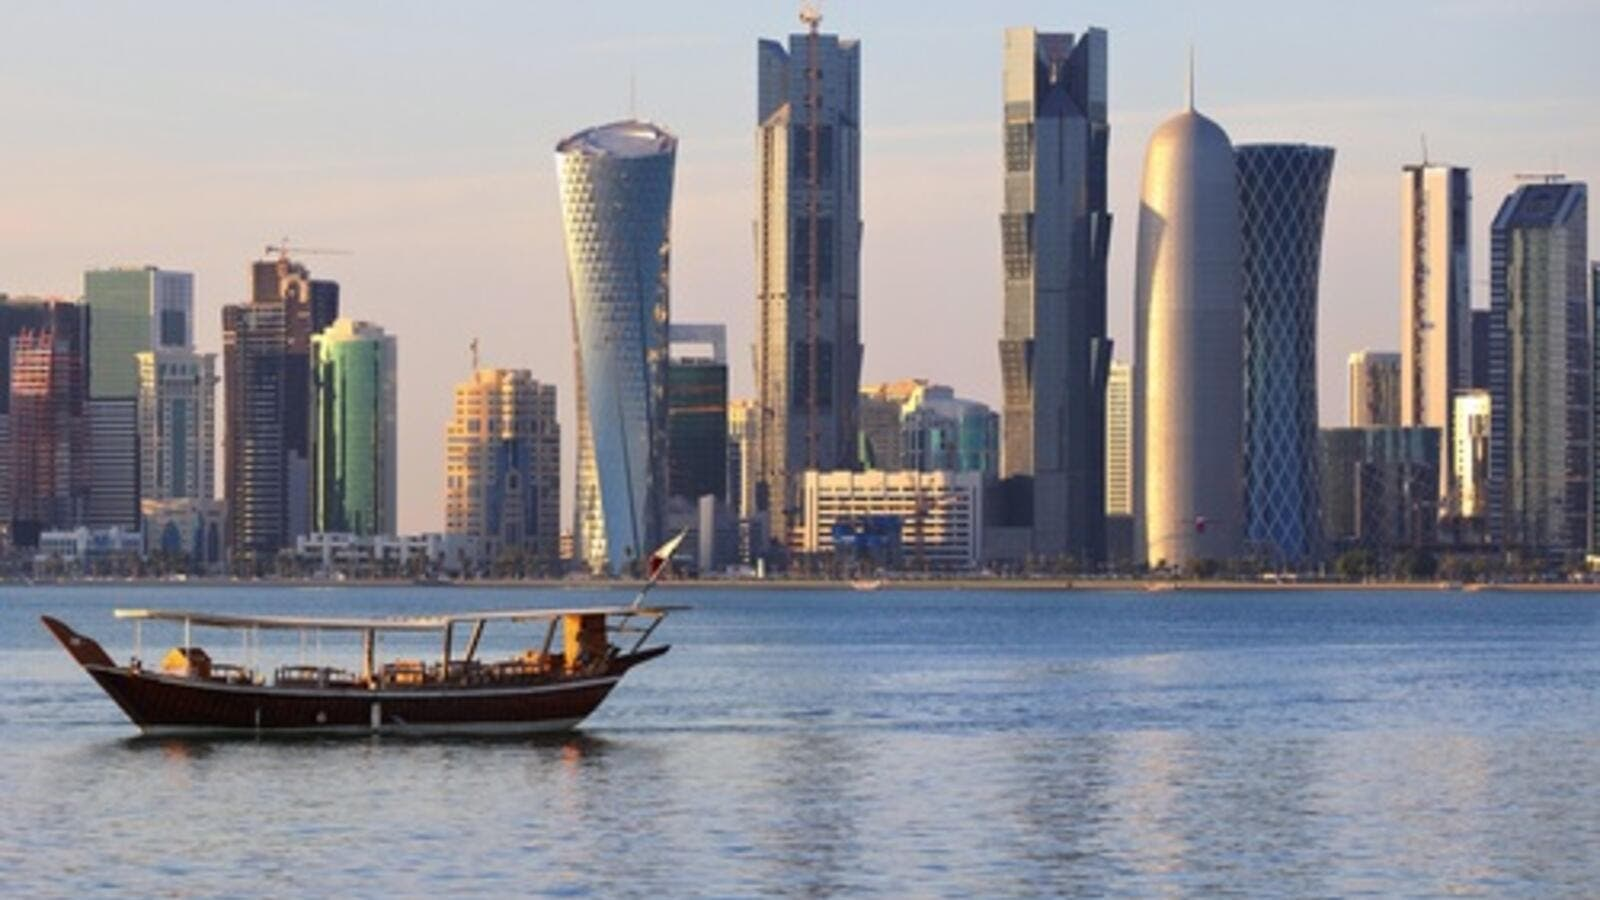 Qatar's tourism experienced 7 percent growth in the third quarter of 2013 (Shutterstock)